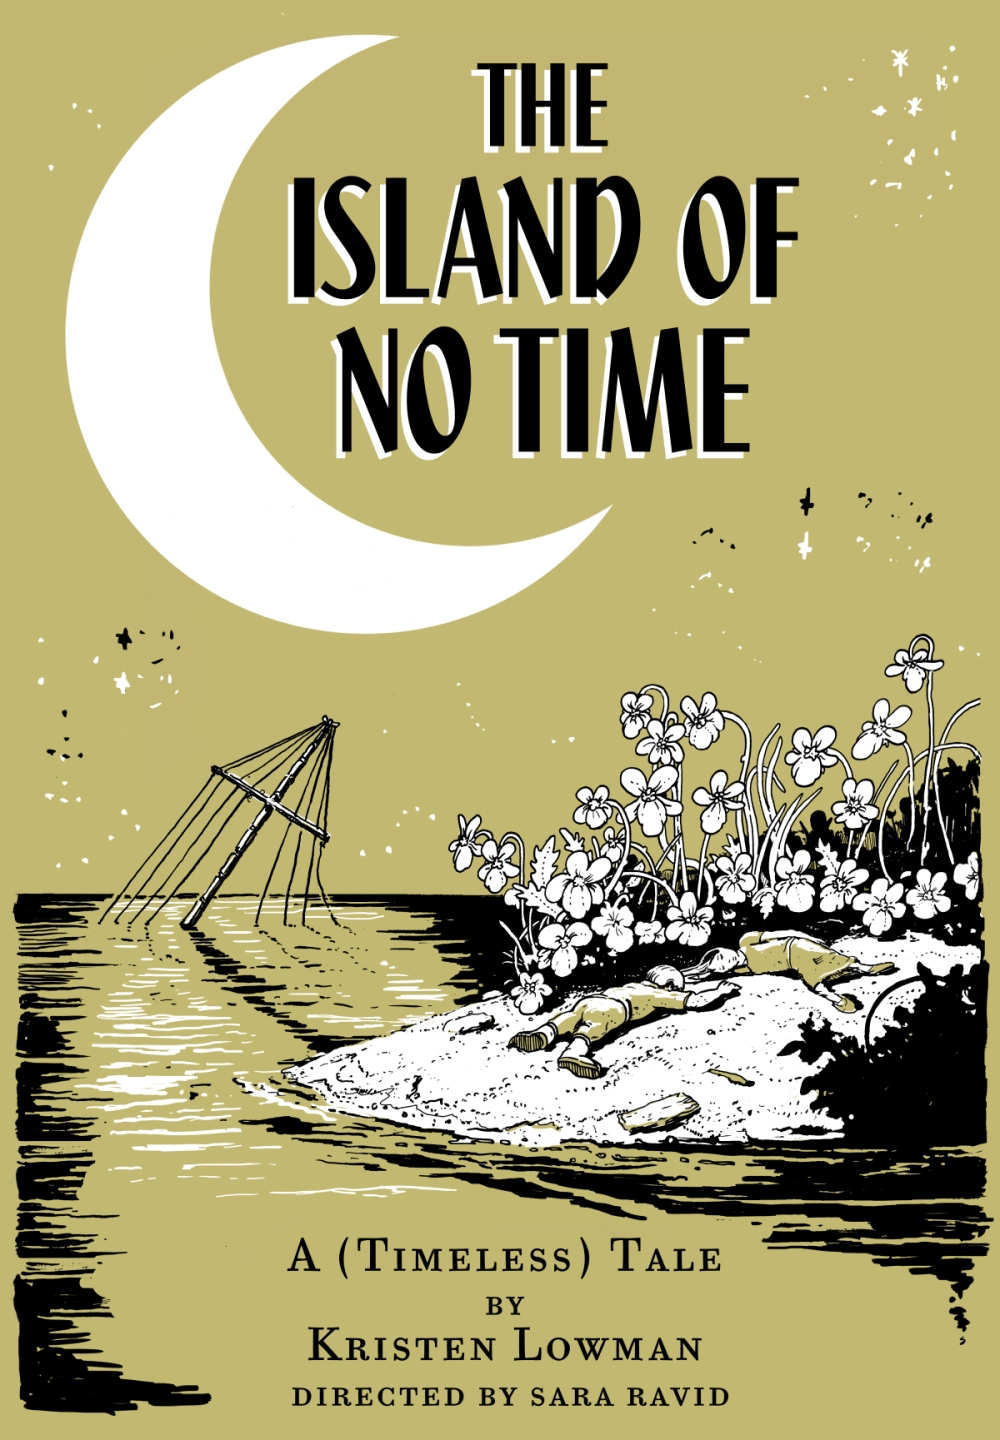 island-of-no-time-2-color (2).jpg